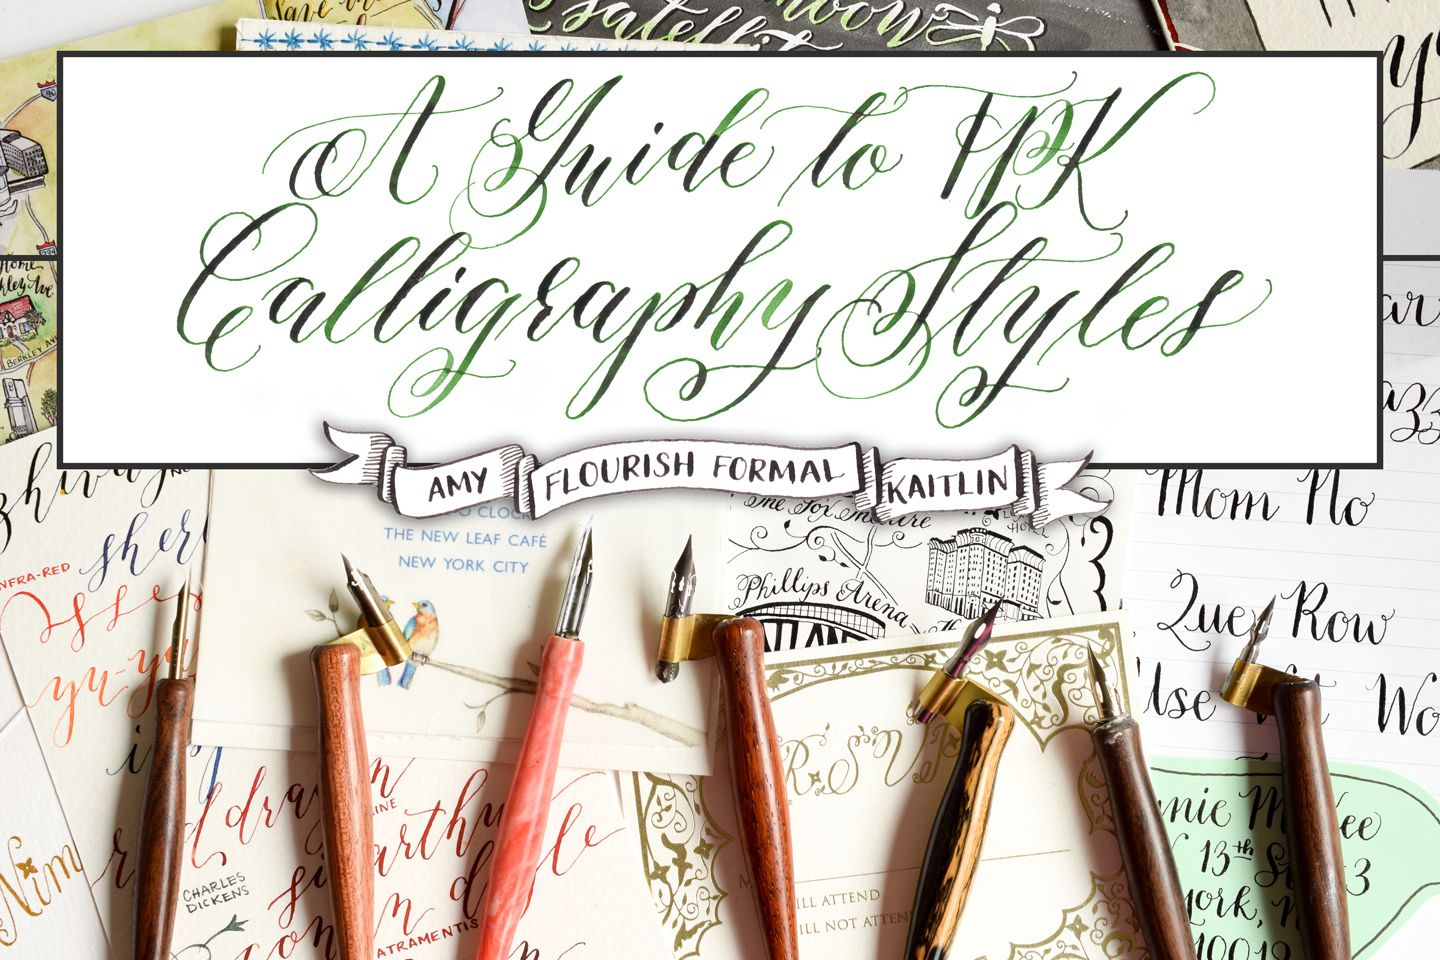 A Guide To Tpk Calligraphy Styles Amy Flourish Formal